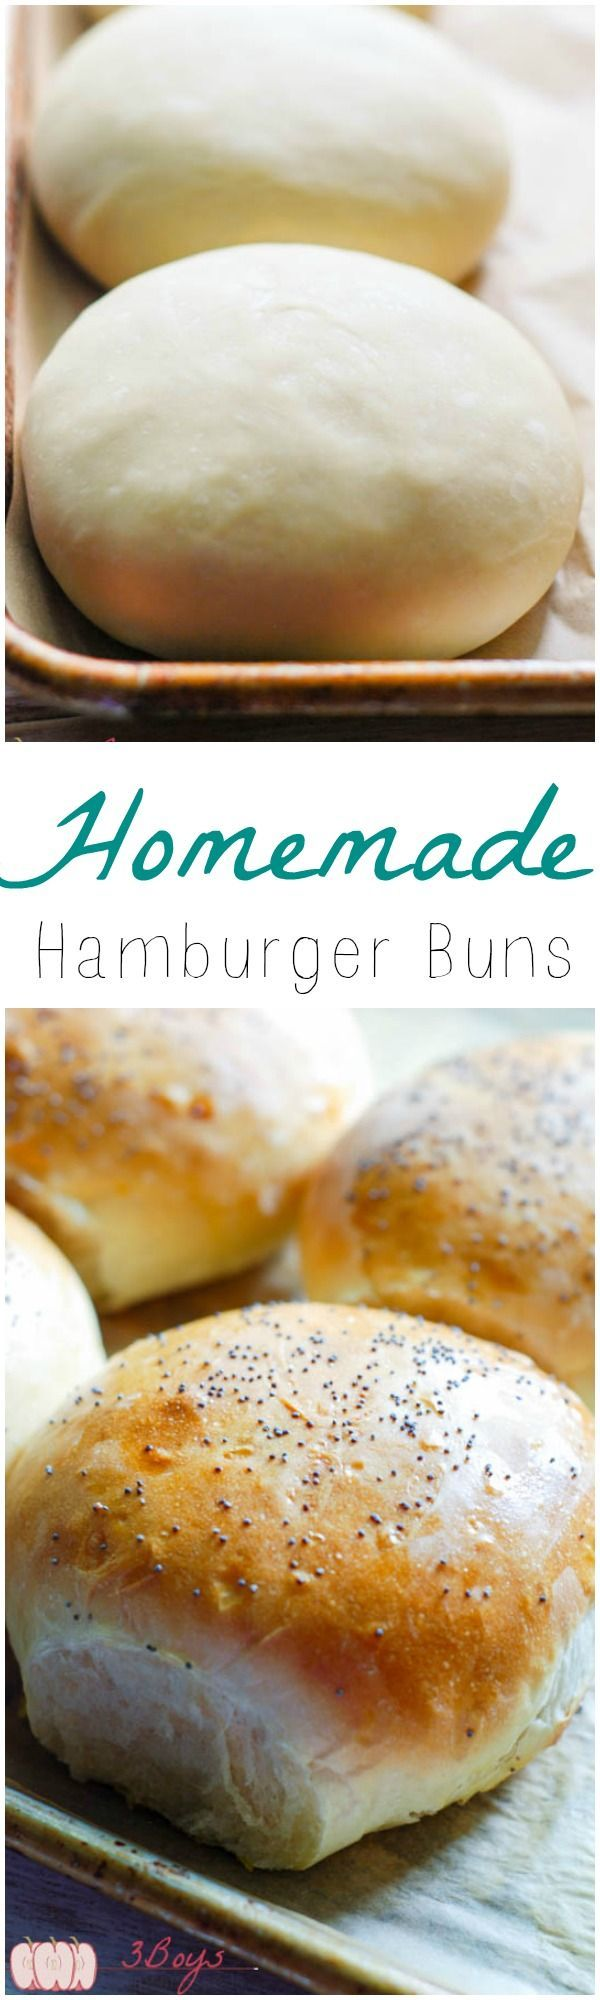 Easy Homemade Hamburger Buns just in time for summer grilling!